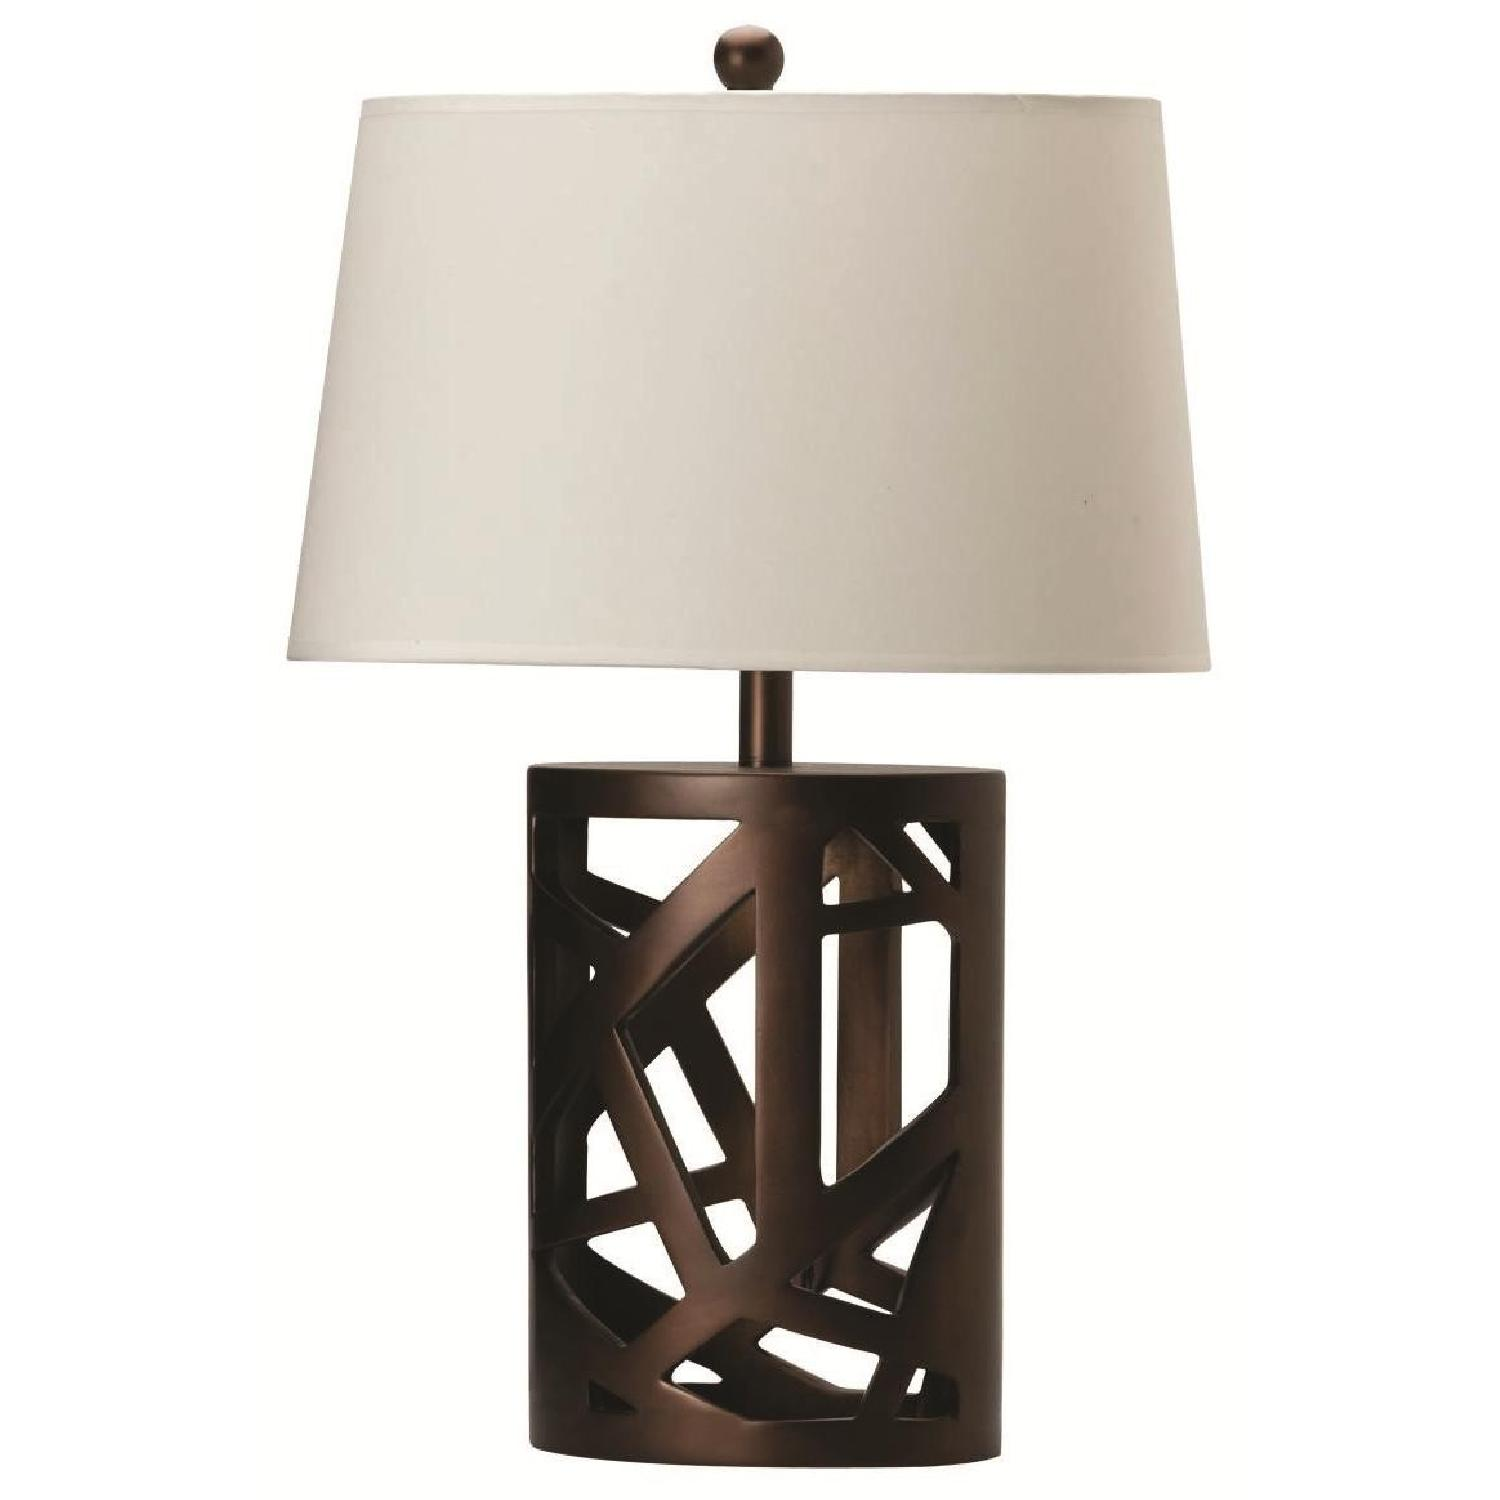 Modern Table Lamp w/ White Tapered Drum Shade & Wood Cut-Out Base - image-1